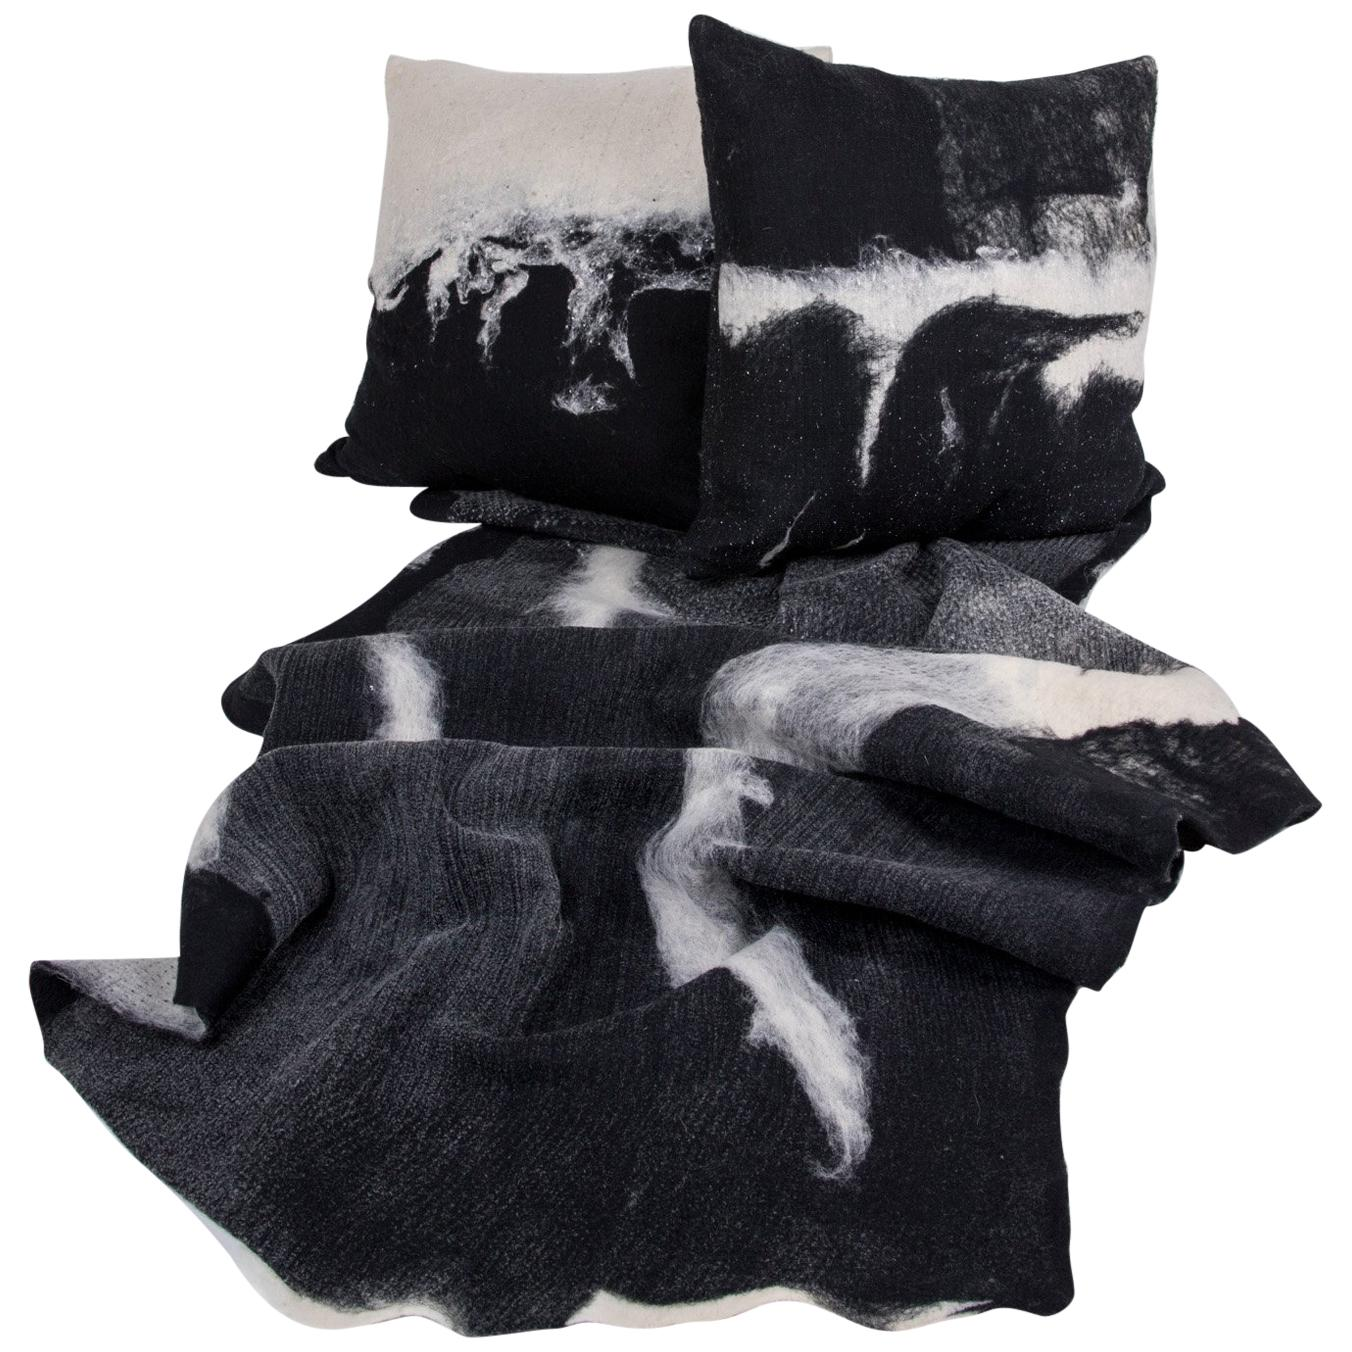 Hand Milled Artisan Wool Pillows and